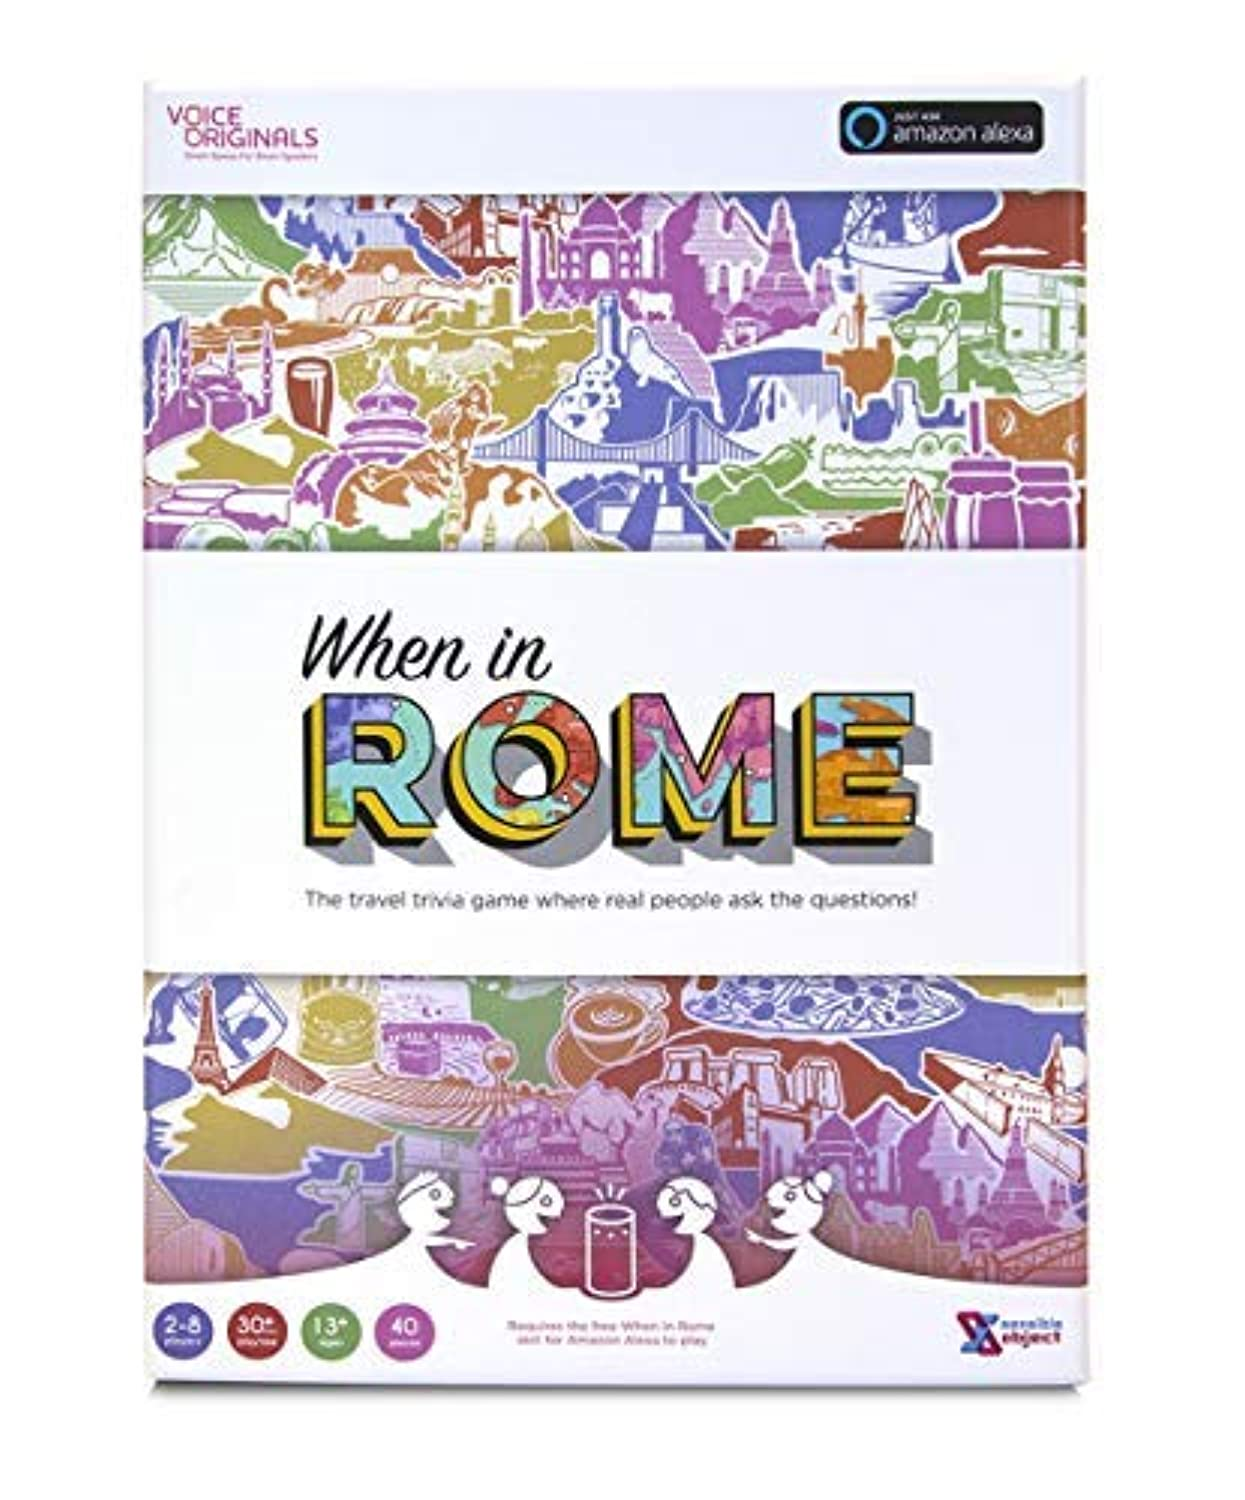 Voice Originals - When in Rome Travel Trivia Game Powered by Alexa [並行輸入品]